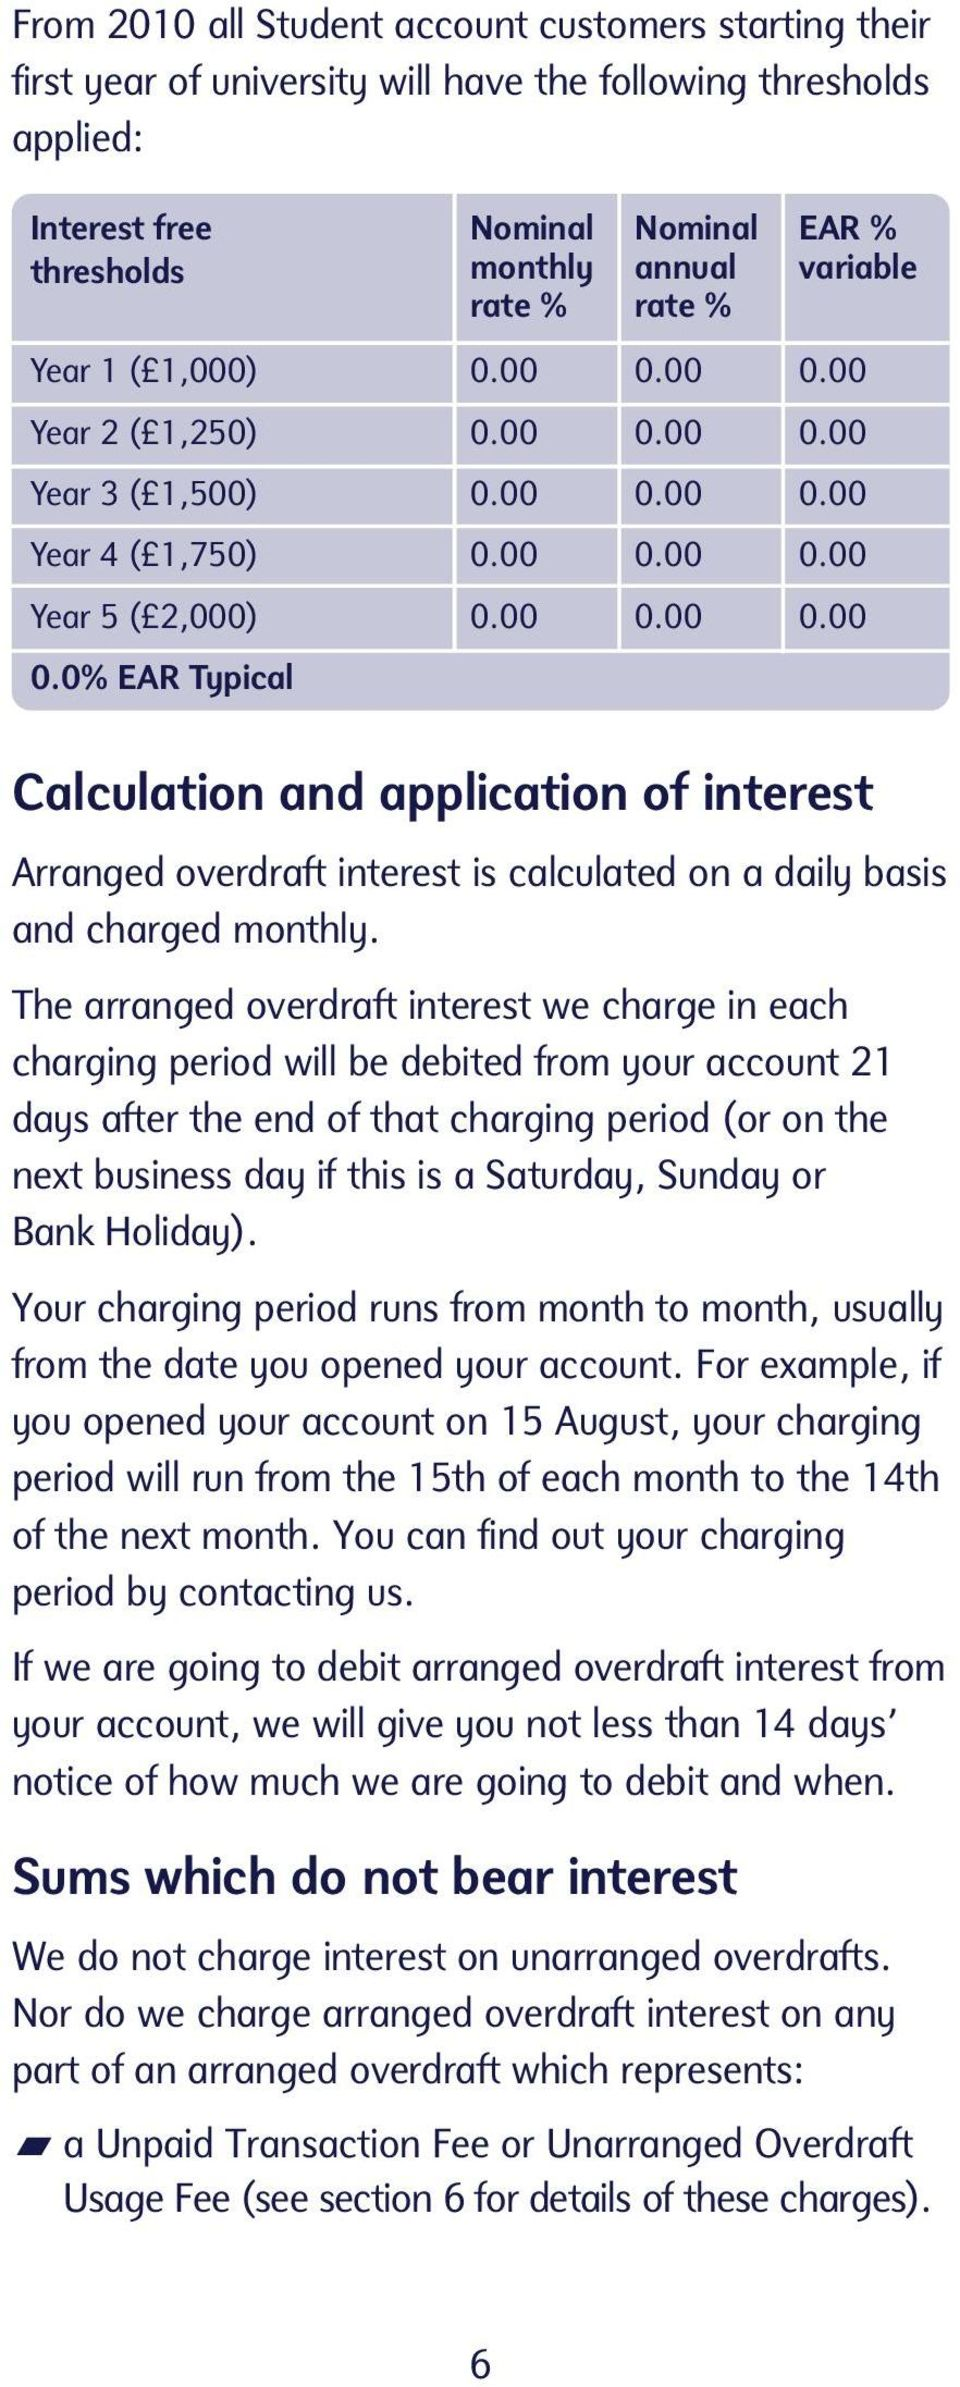 The arranged overdraft interest we charge in each charging period will be debited from your account 21 days after the end of that charging period (or on the next business day if this is a Saturday,